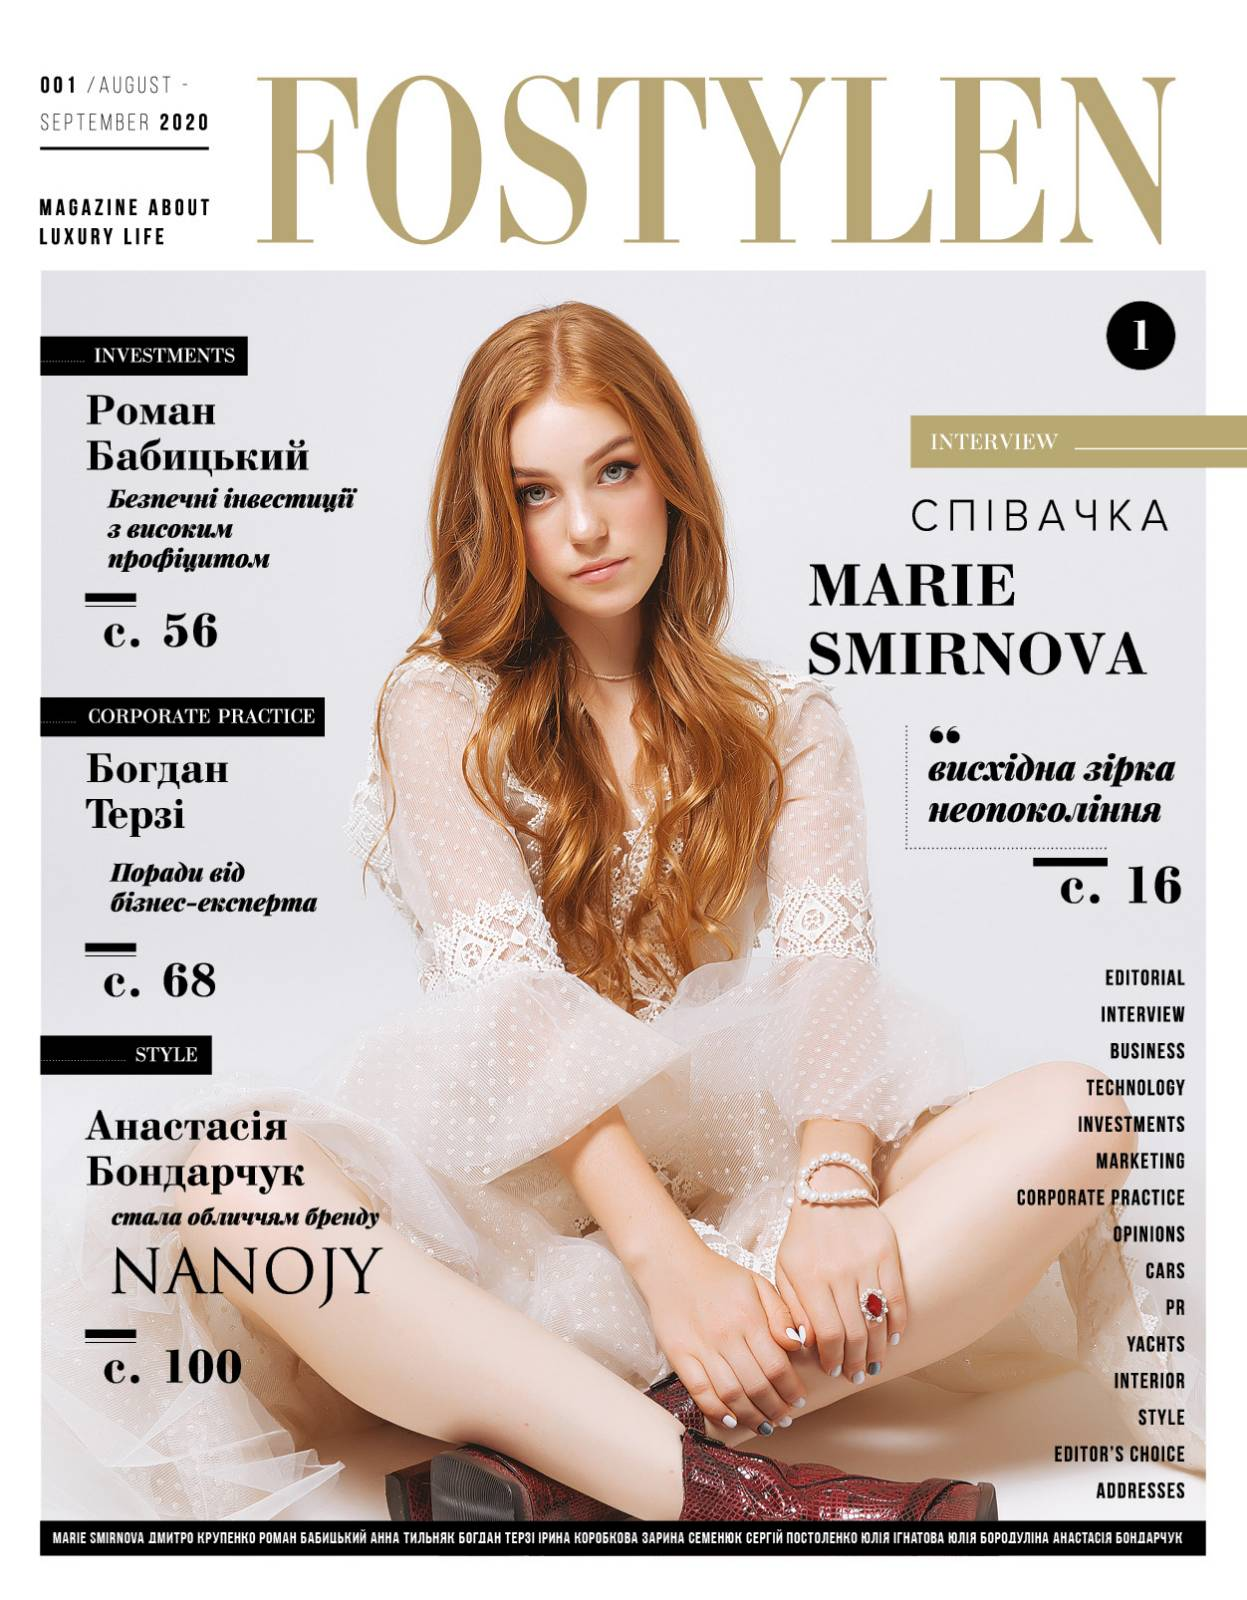 Fostylen - the first issue will be printed soon